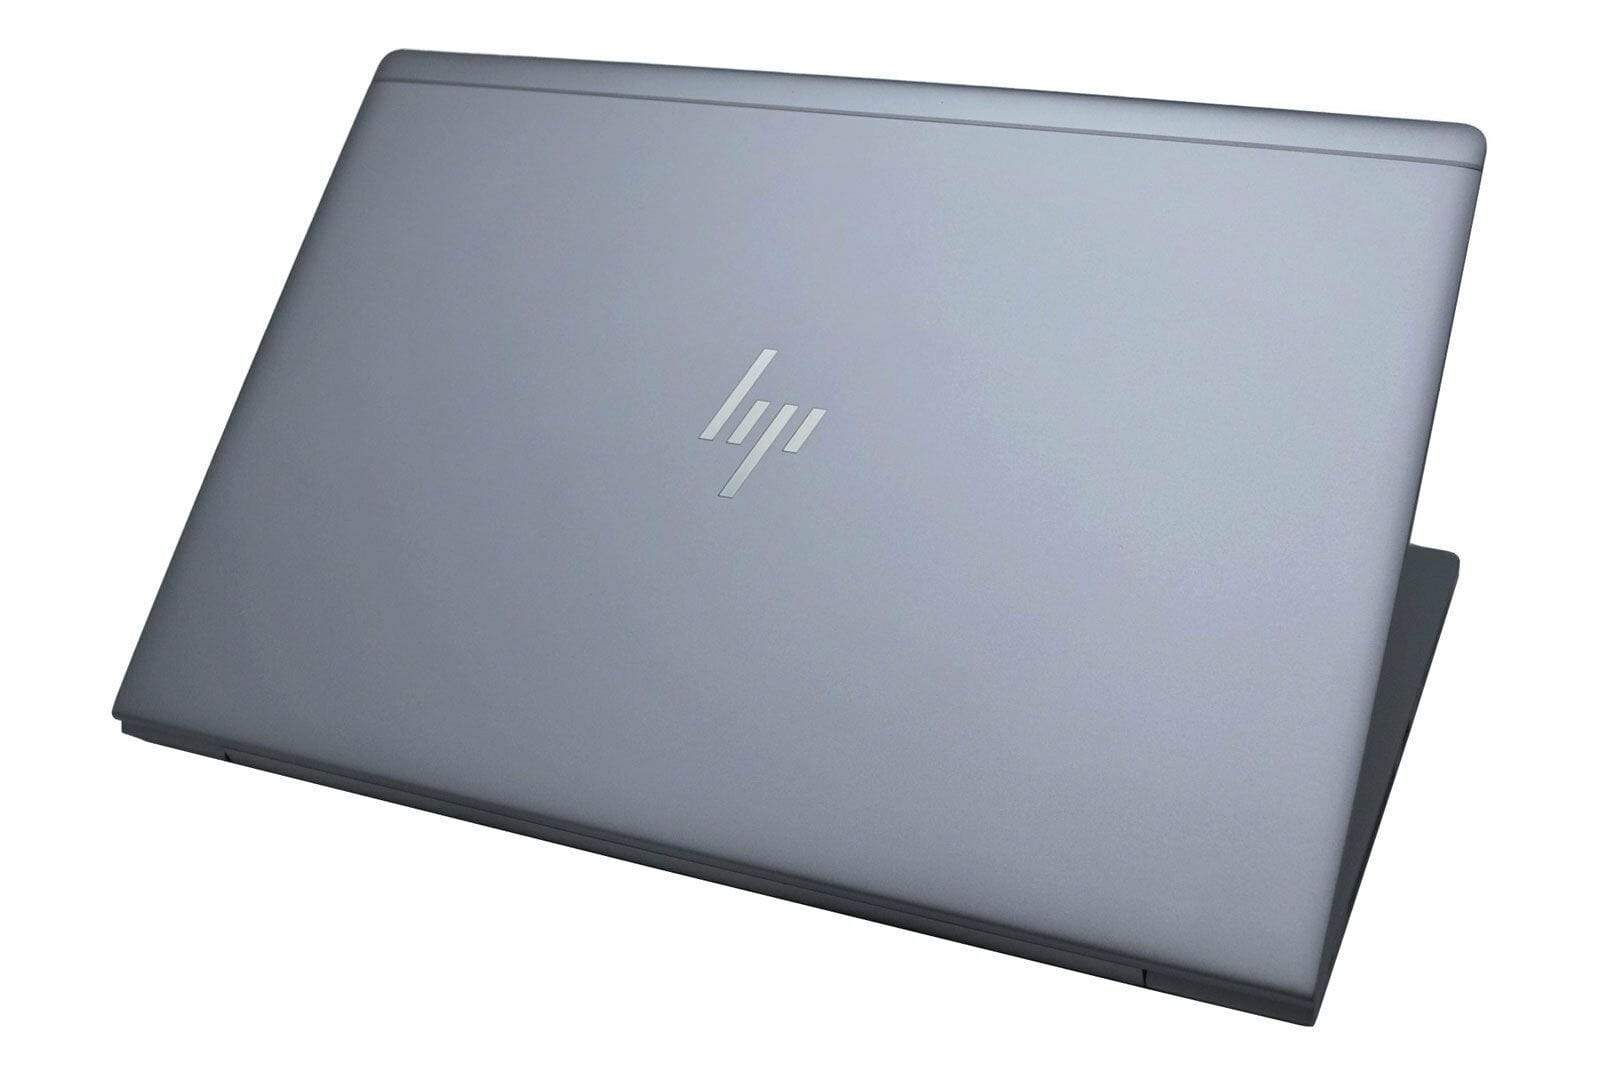 HP ZBook 15u G5 Workstation: Core i7-8550U, 512GB, 16GB, Radeon Pro, Warranty - CruiseTech